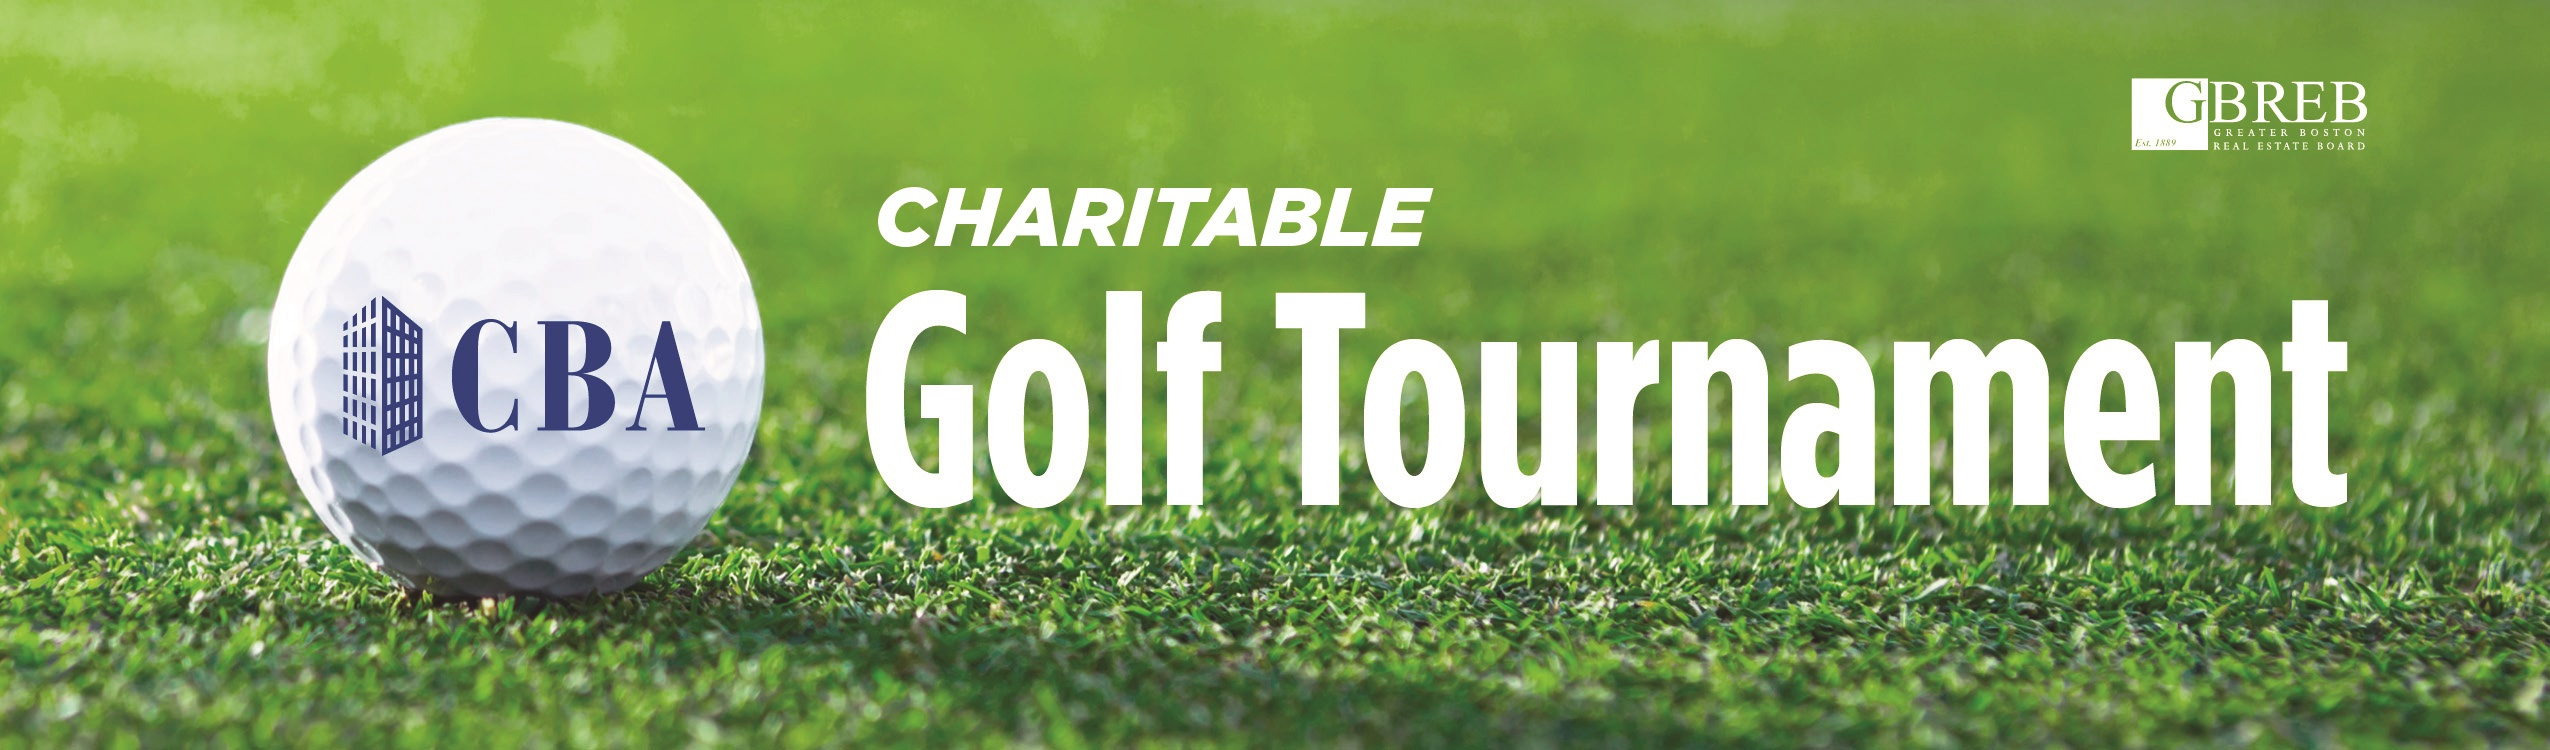 2019 CBA Charitable Golf Tournament